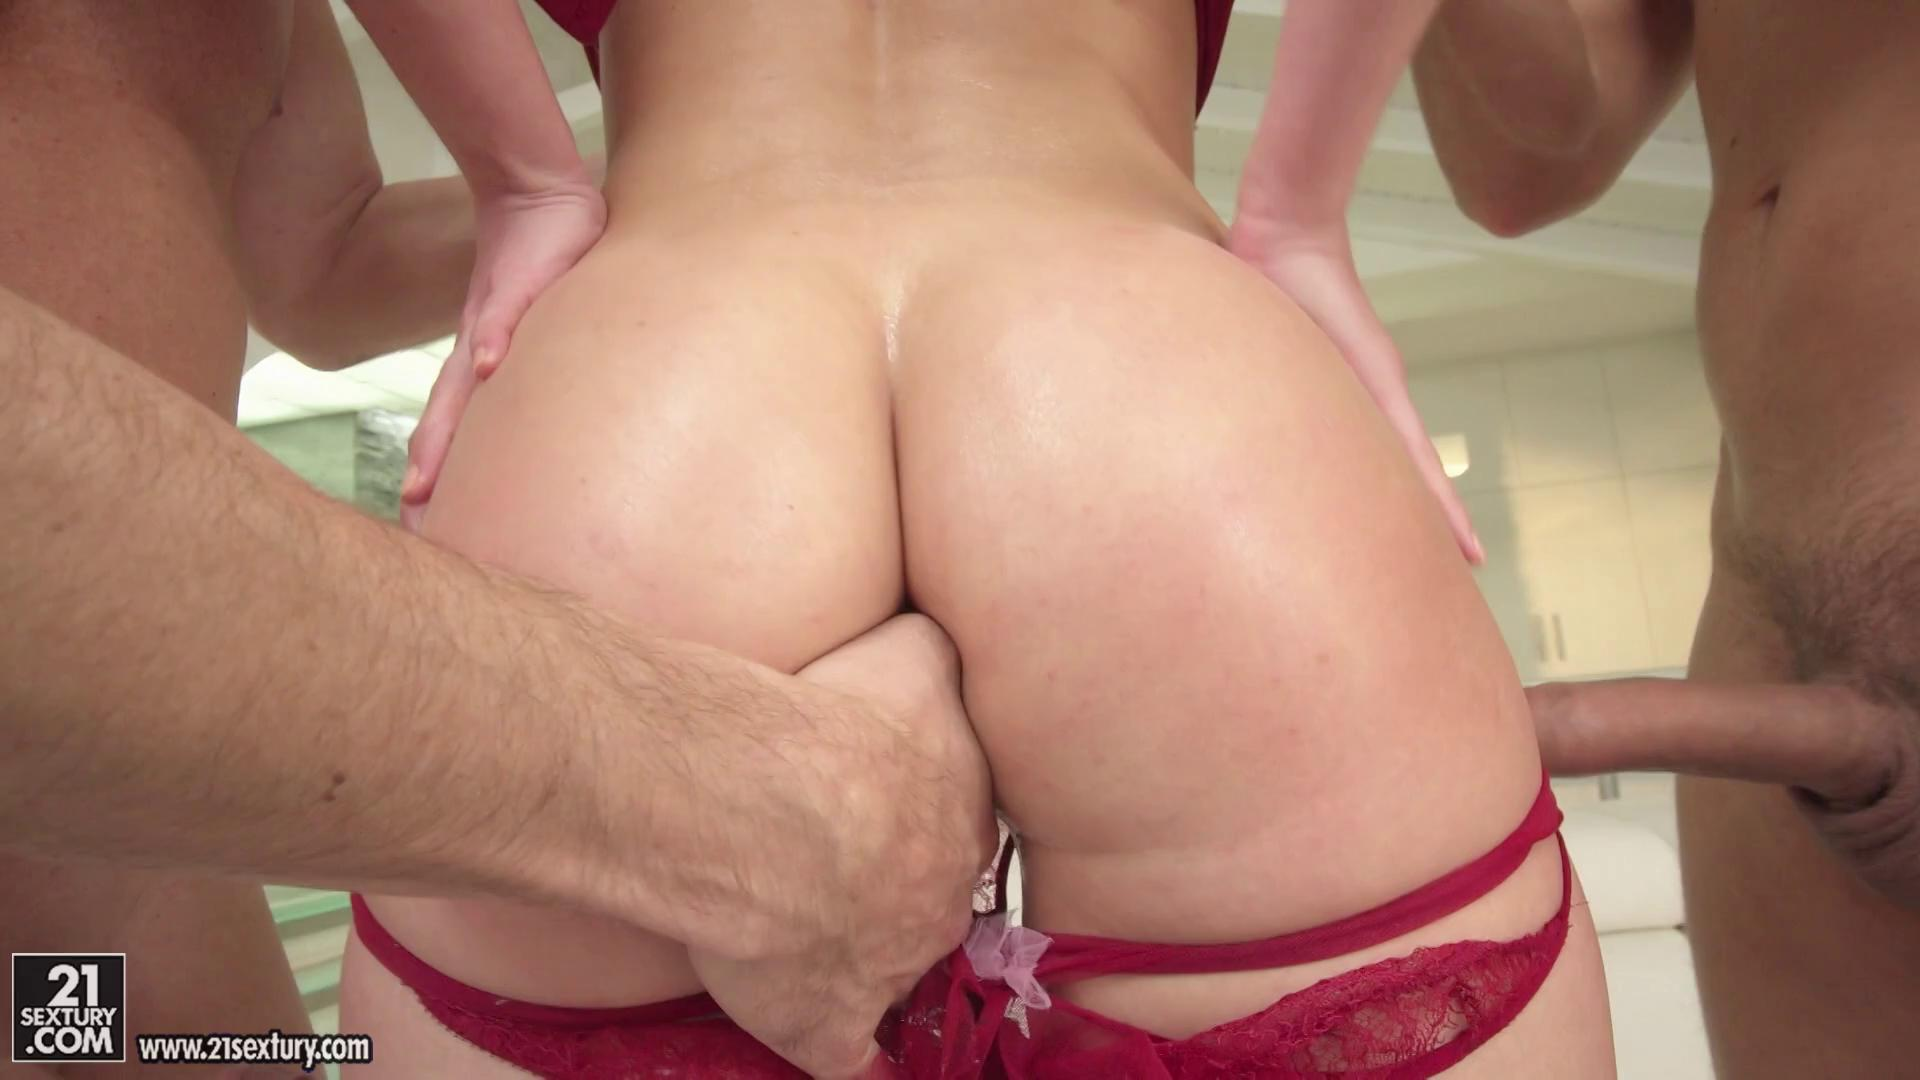 AssholeFever – Mia Cruise Spank Me Harder